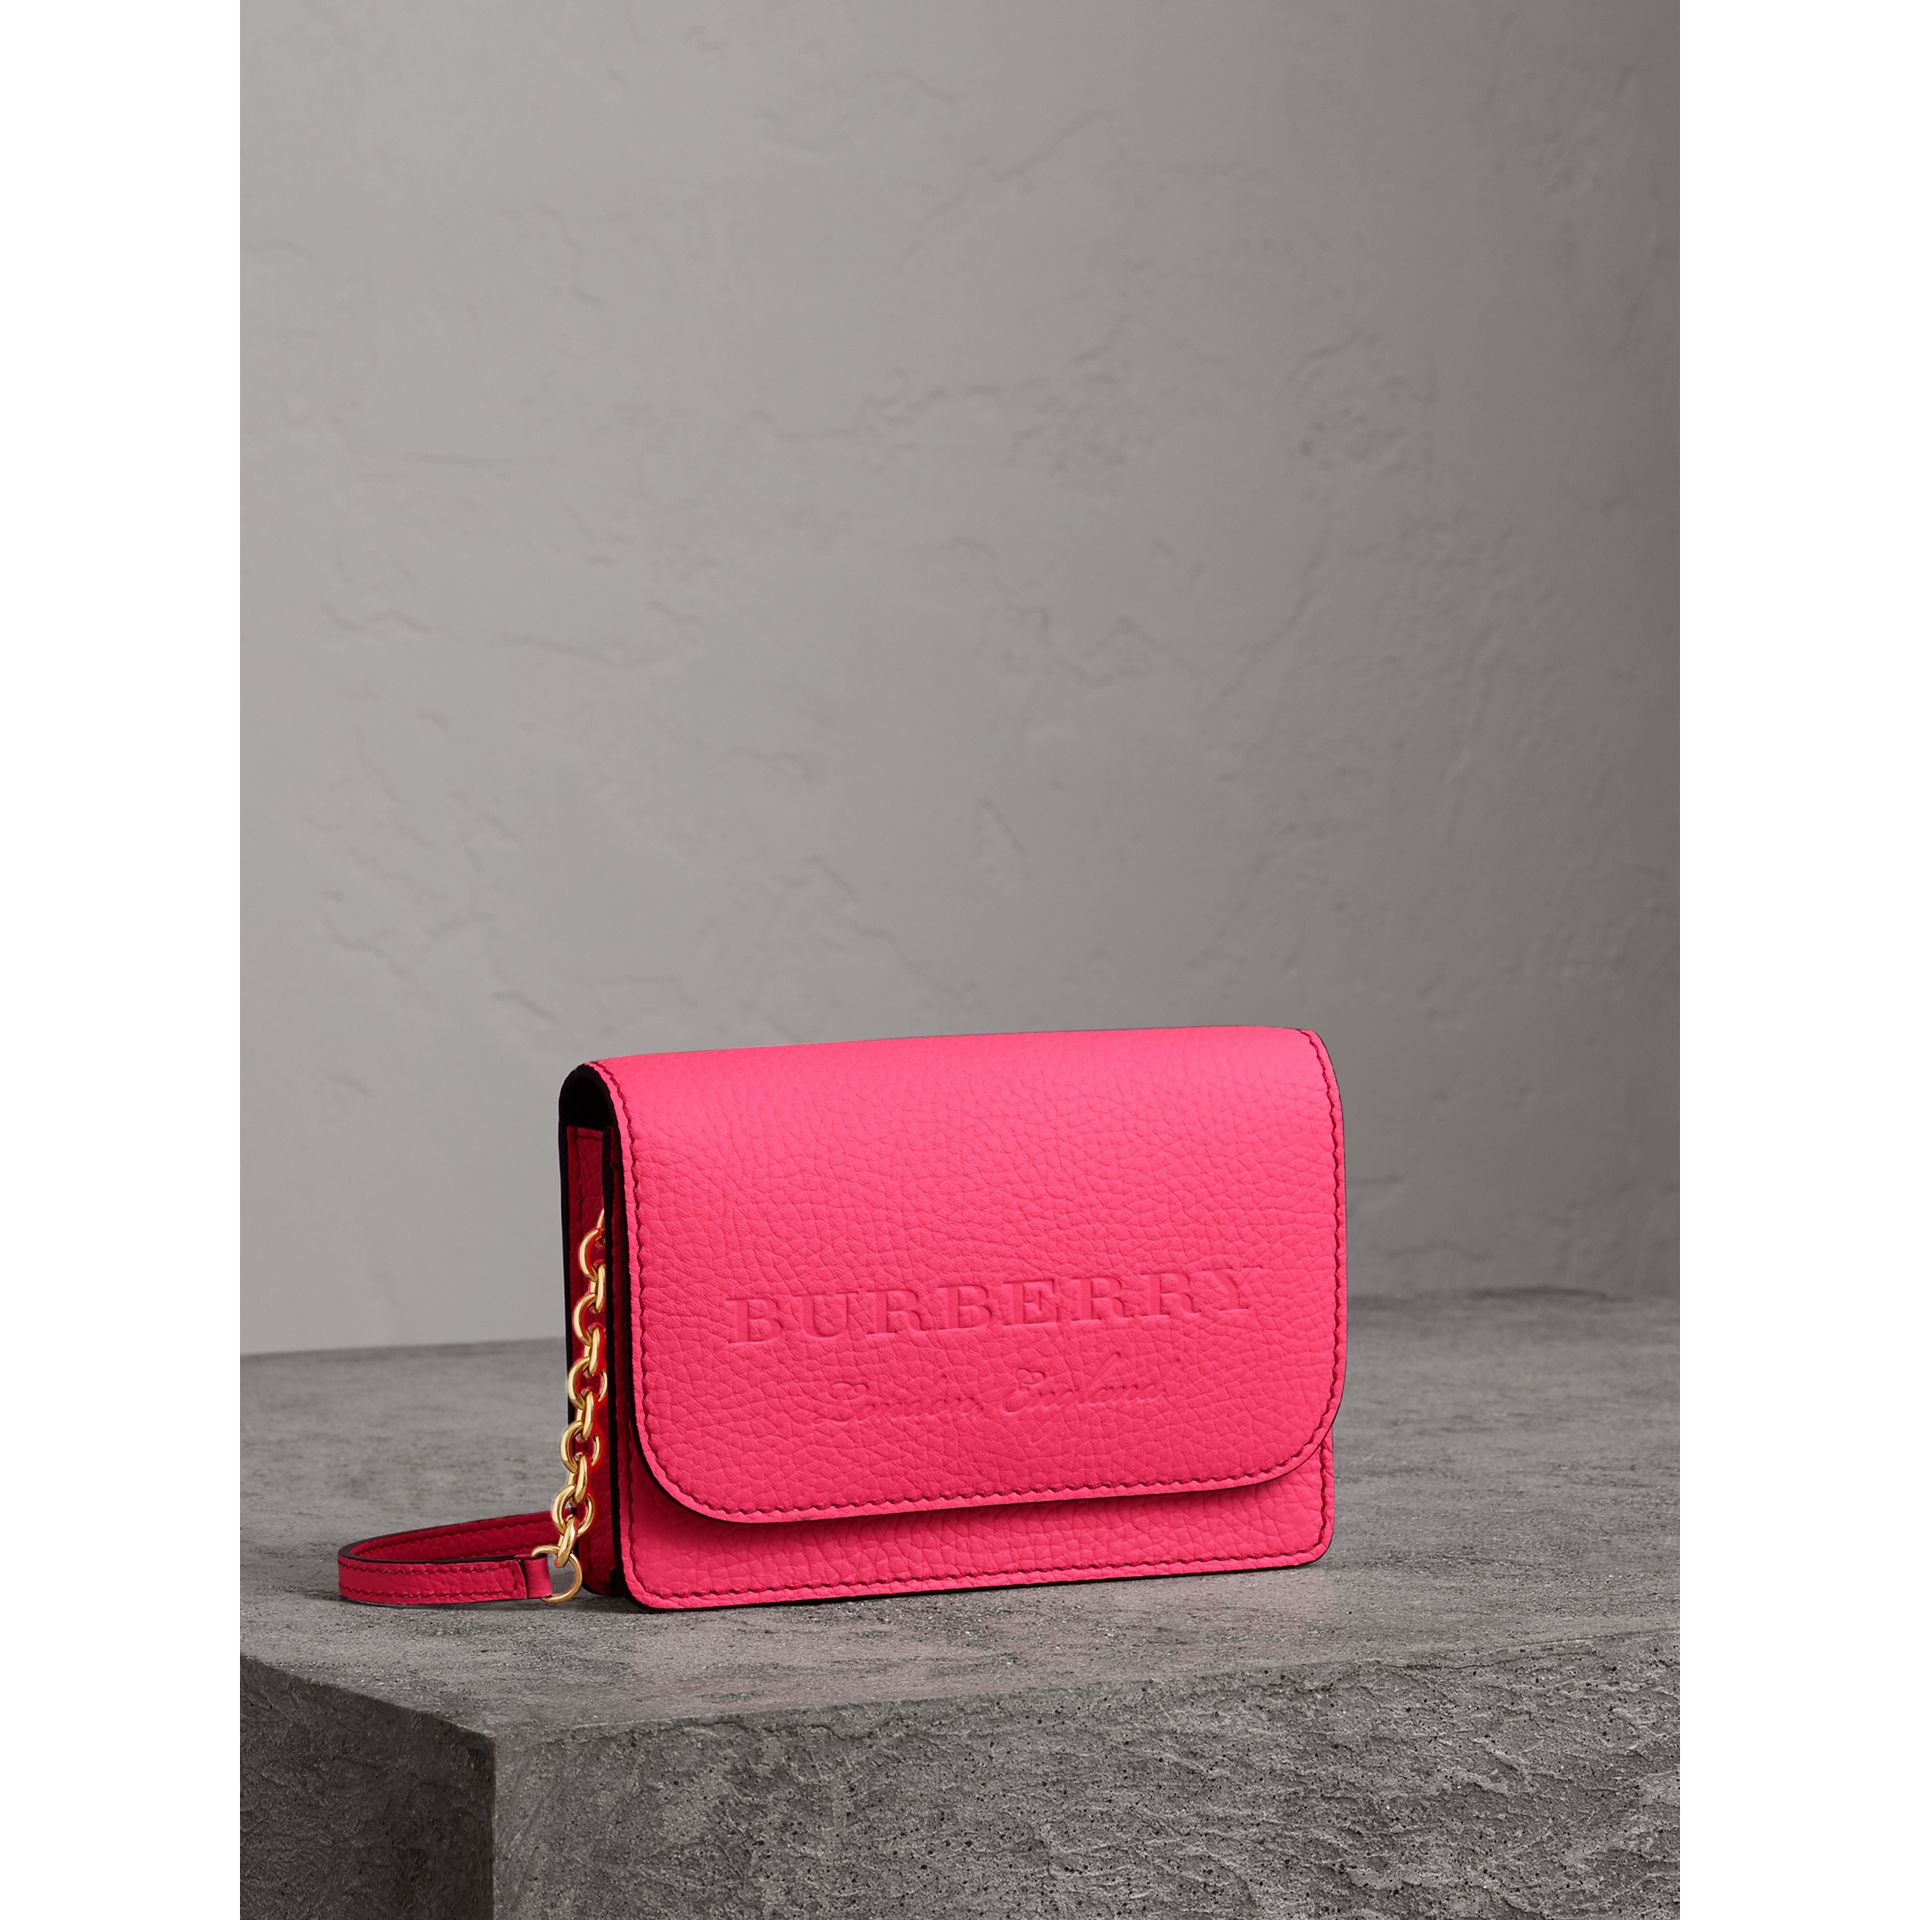 Embossed Leather Wallet with Detachable Strap in Bright Pink - Women | Burberry United Kingdom - gallery image 6